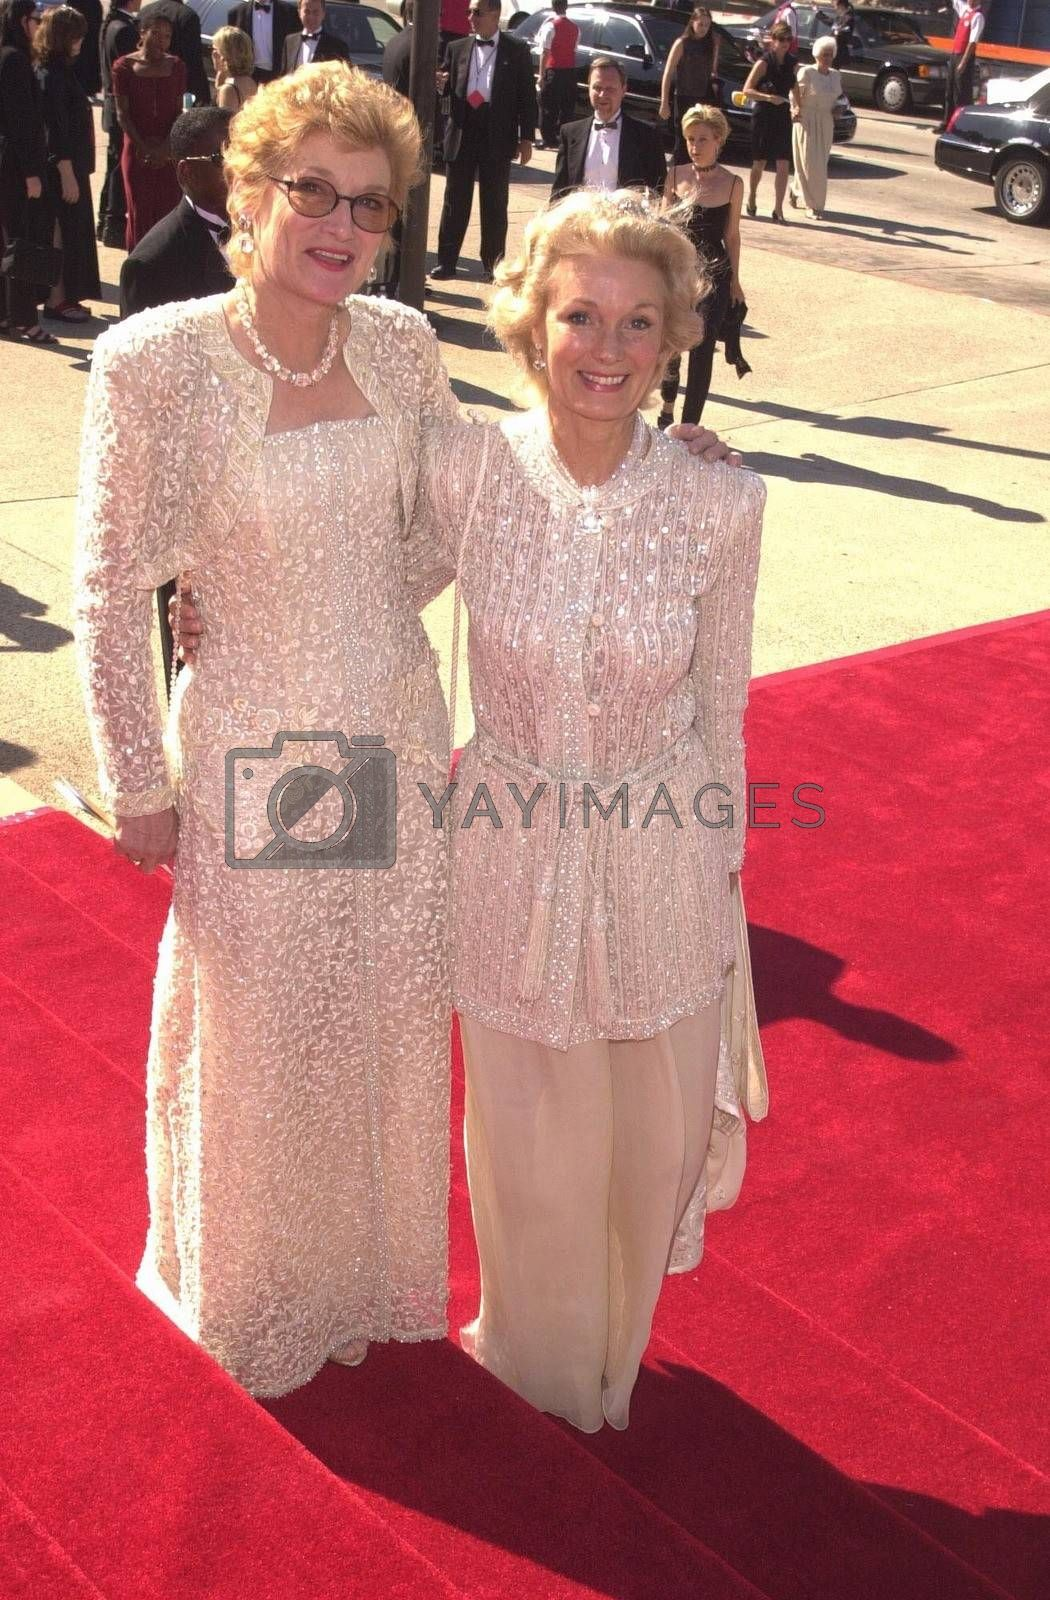 Yvette Mimieux and Sister Gloria at the Creative Arts Emmy Awards in Pasadena. 08-26-00